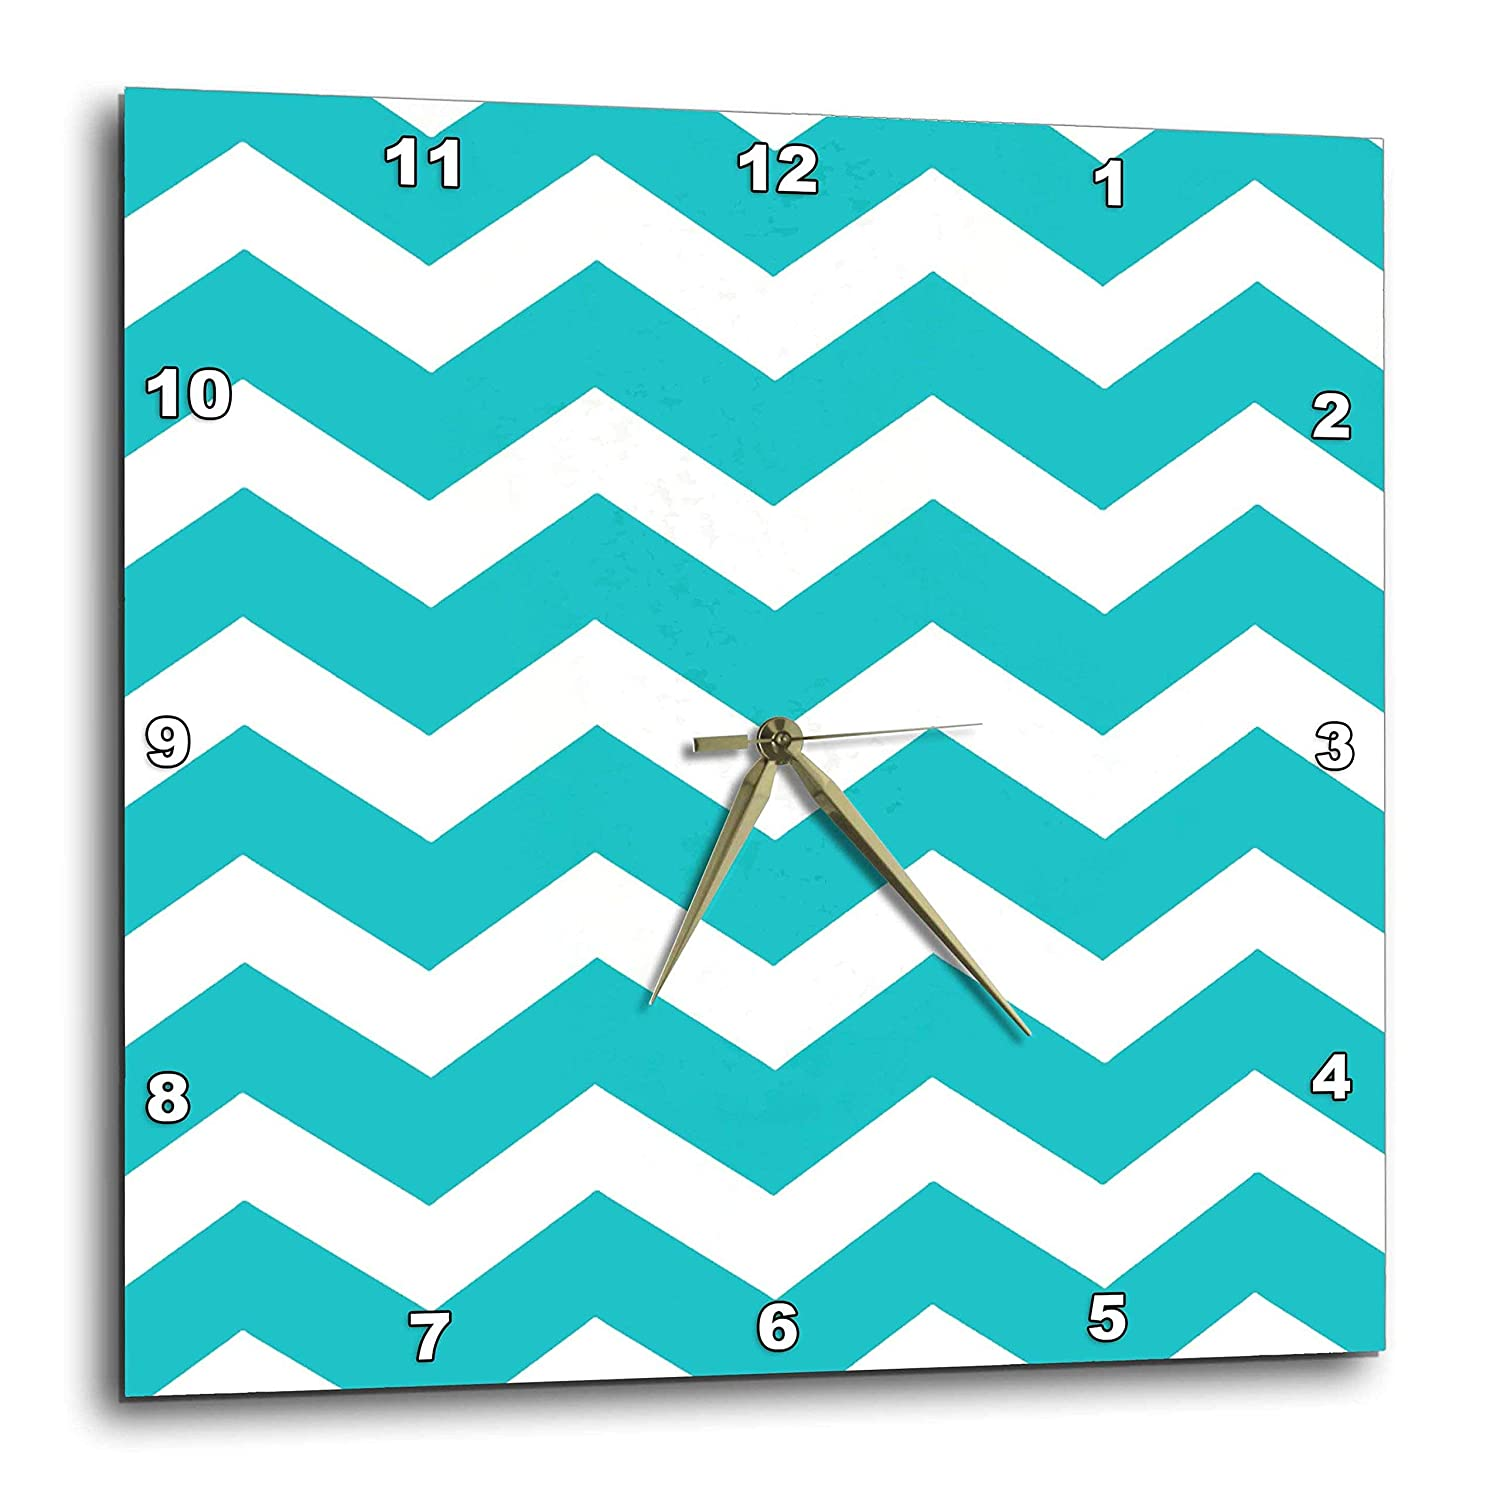 15 by 15-Inch 3dRose dpp/_179669/_3 Turquoise Chevron Zig Zag Pattern-Teal Aqua Blue Stylish Zigzags-Wall Clock